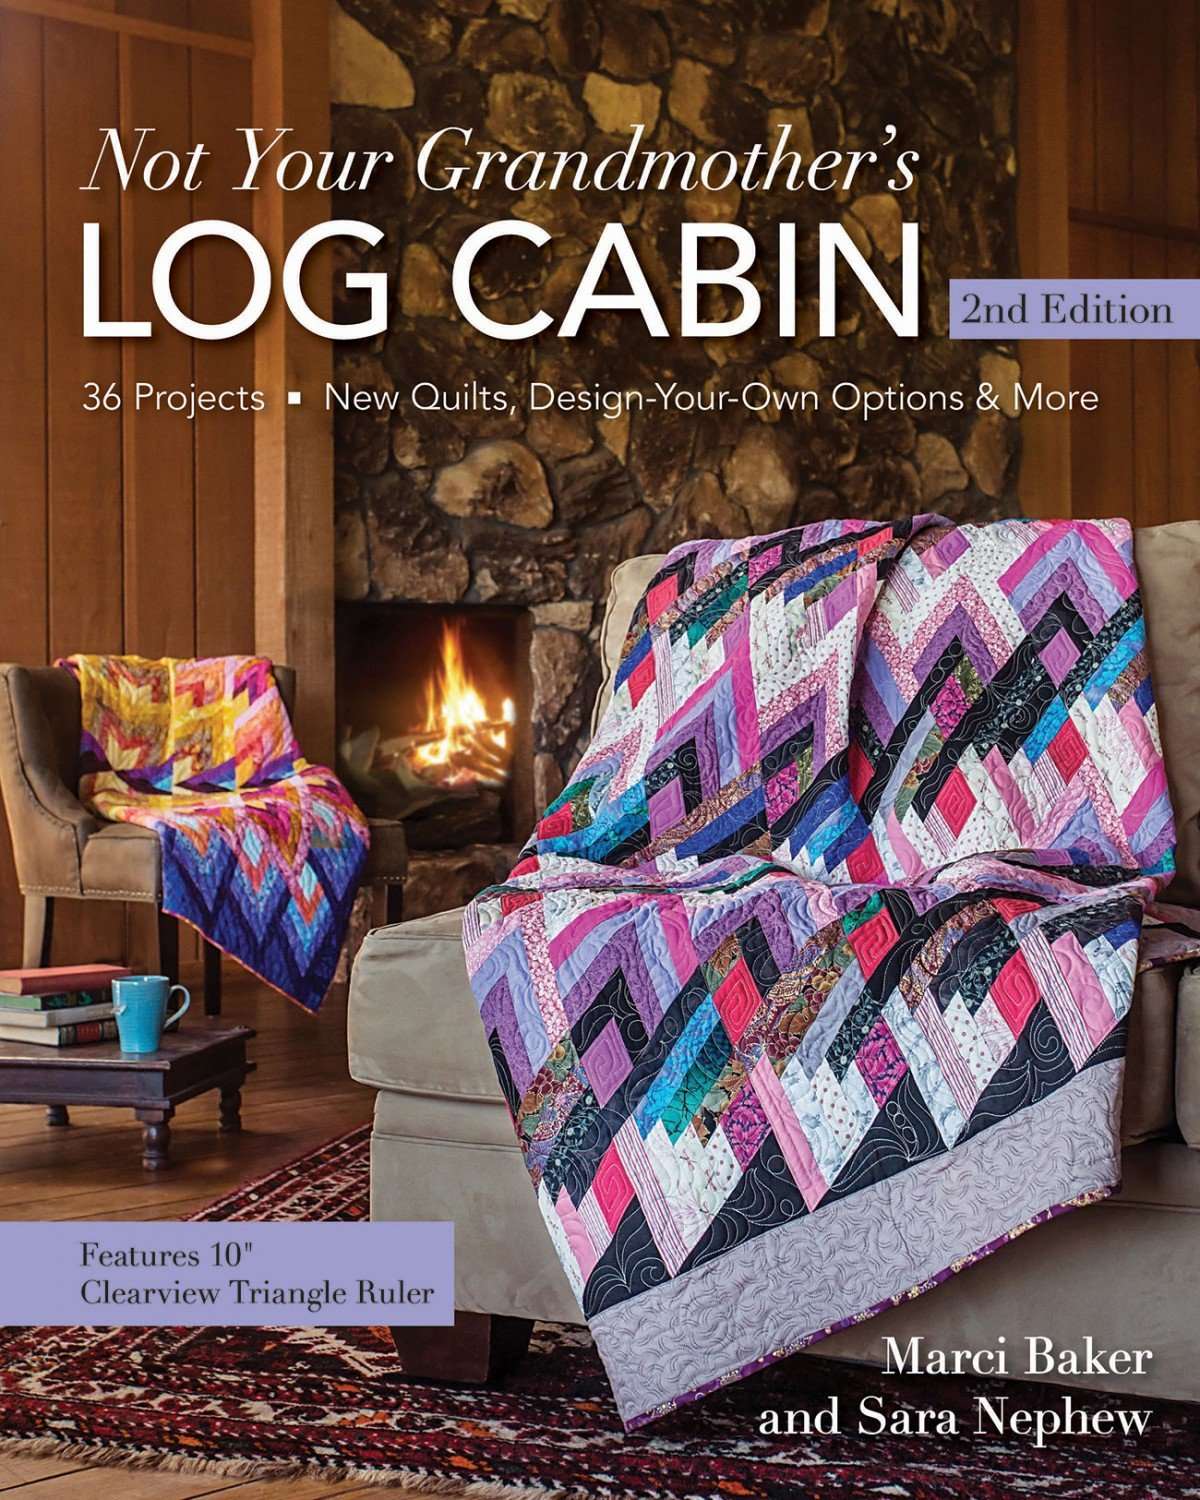 Not Your Grandmother's Log Cabin Book, 2nd Edition - 11161